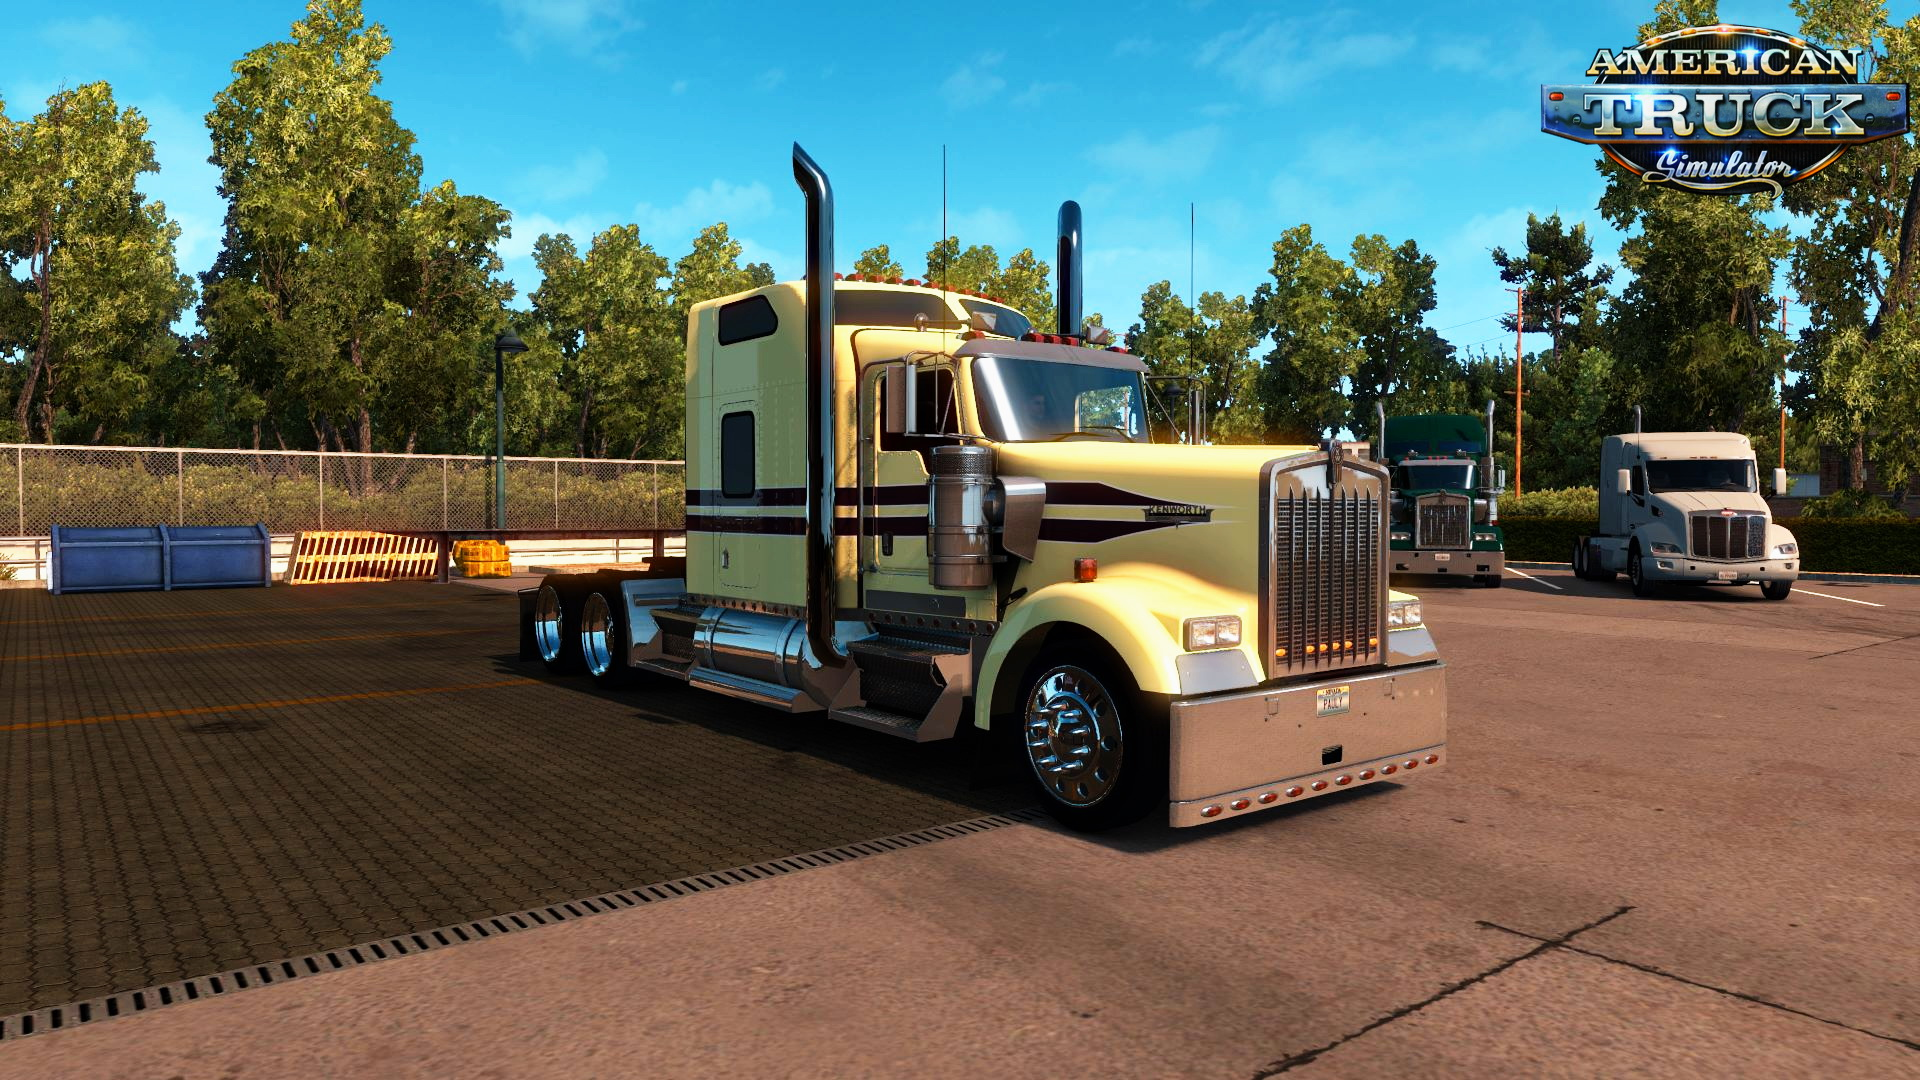 Creamy skin for Kenworth W900 v1.0 by Pauly